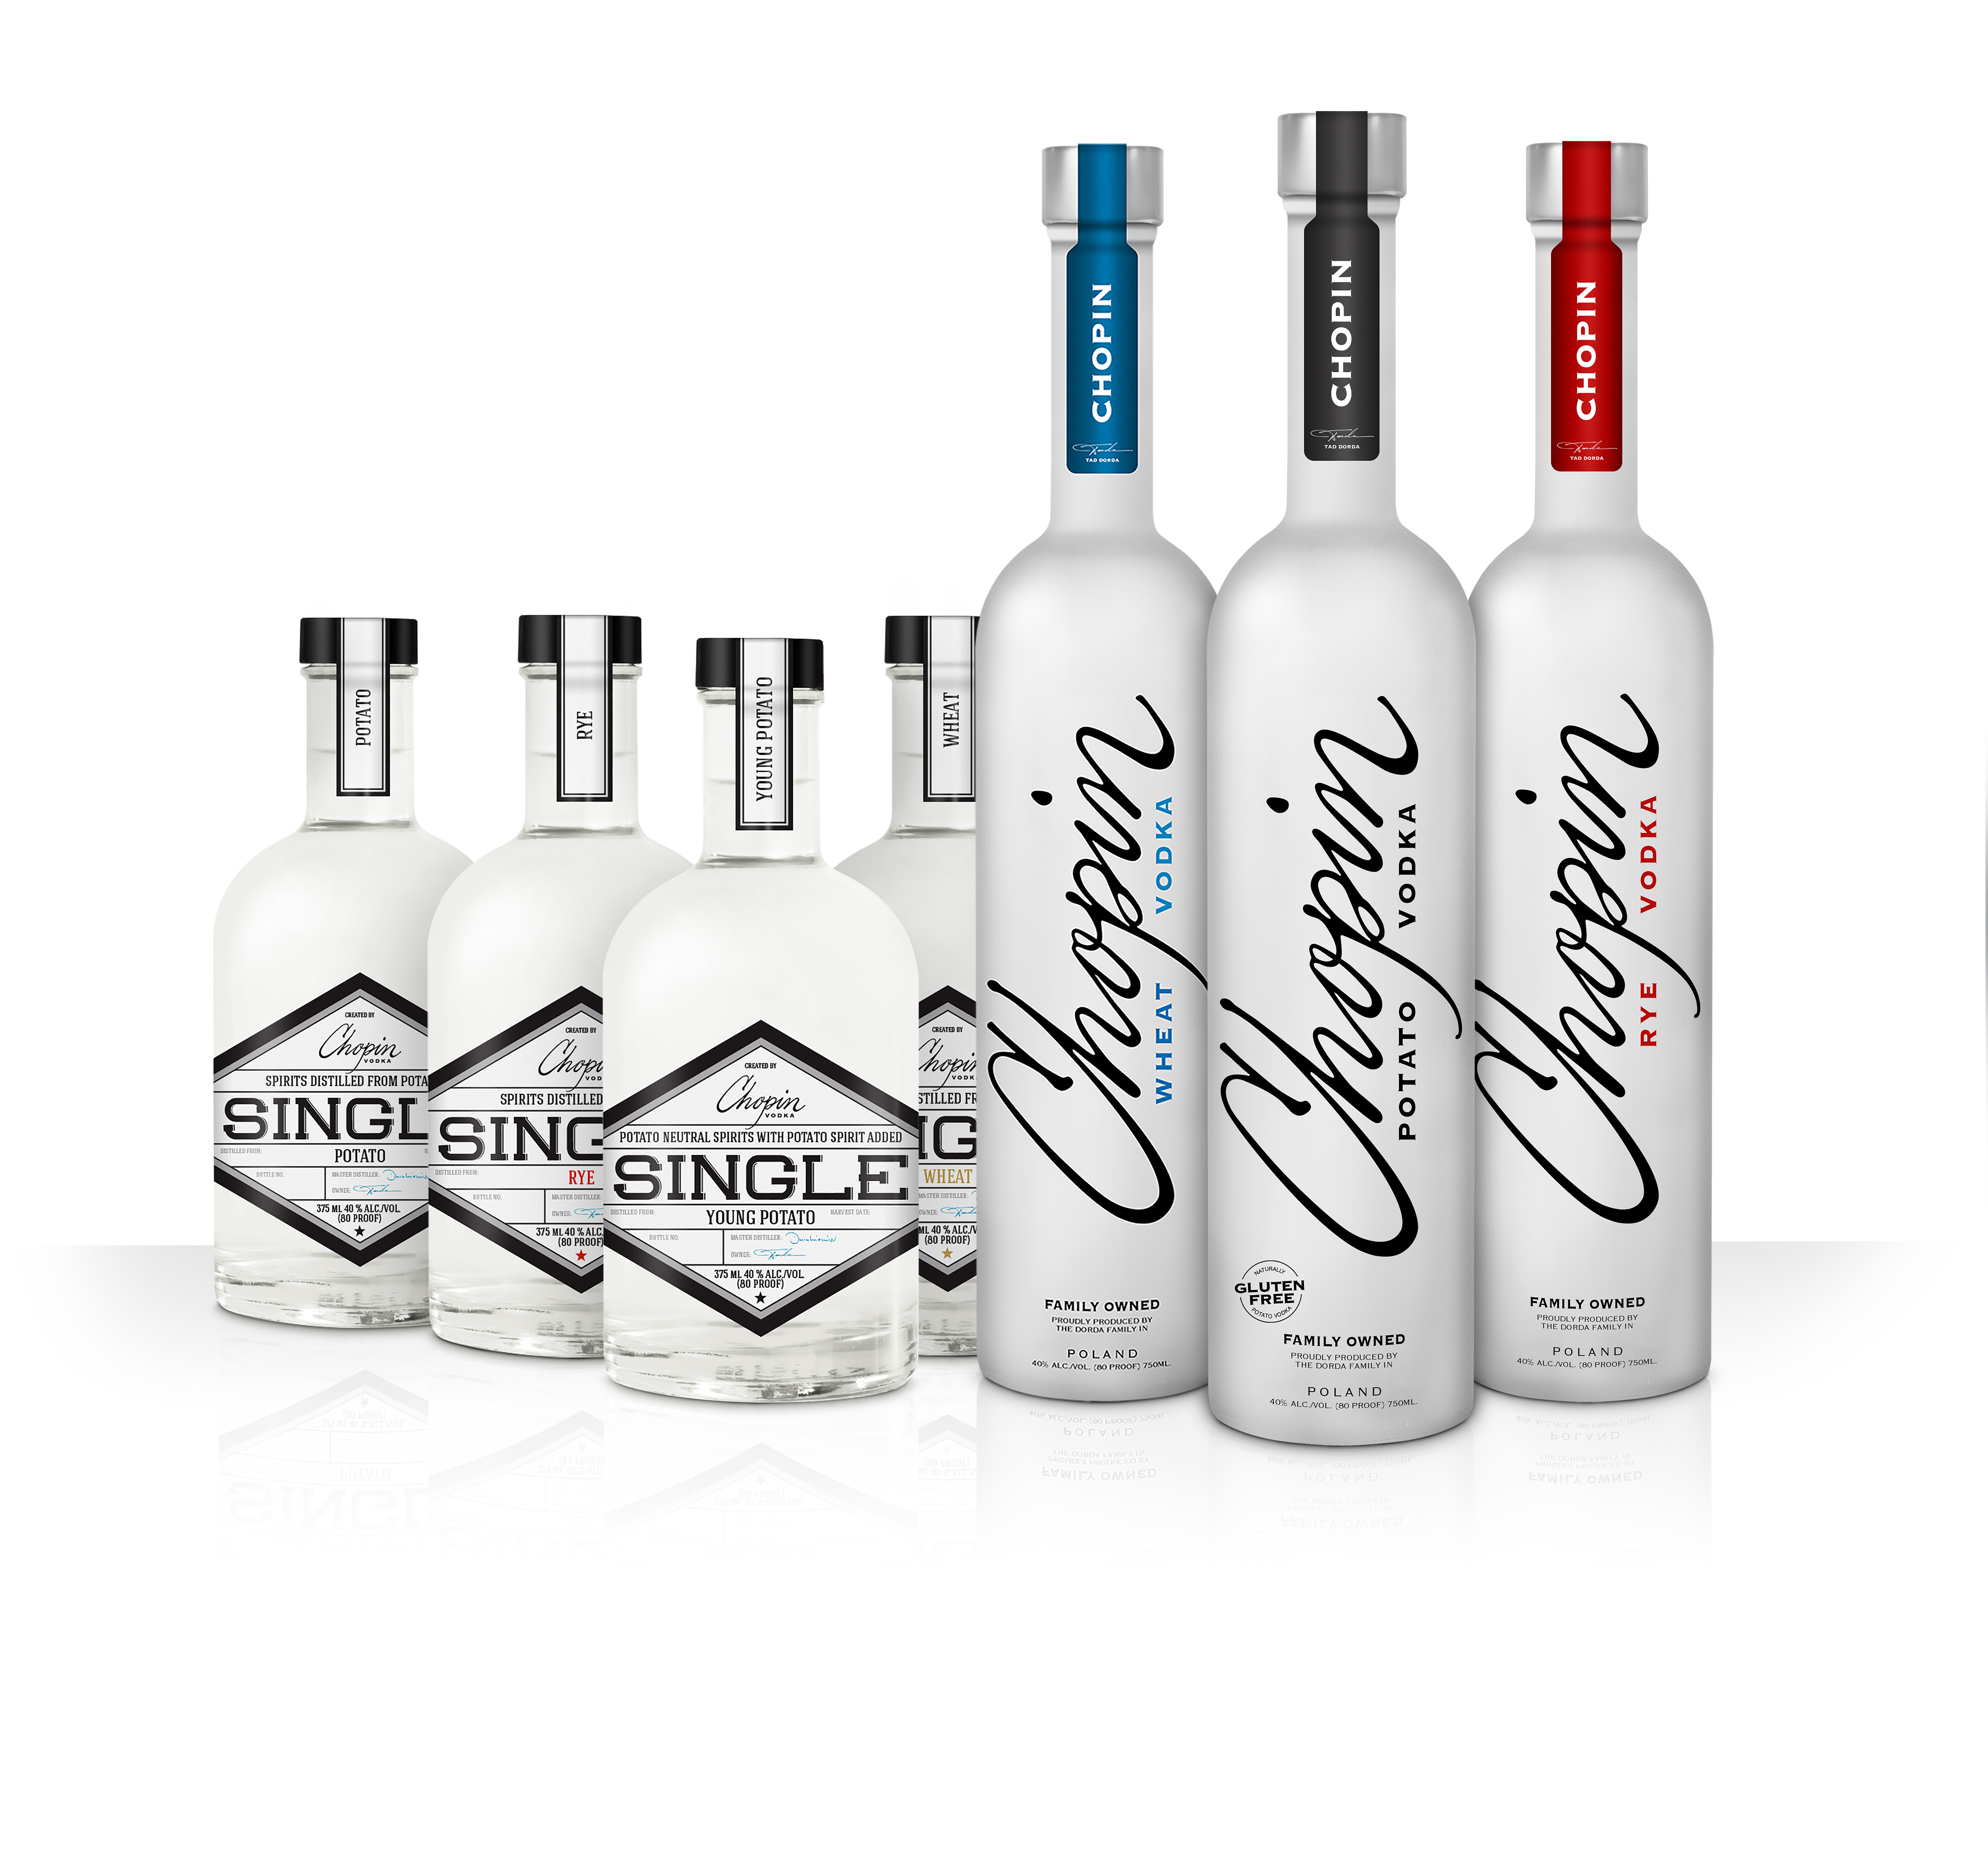 Vodkas with Singles